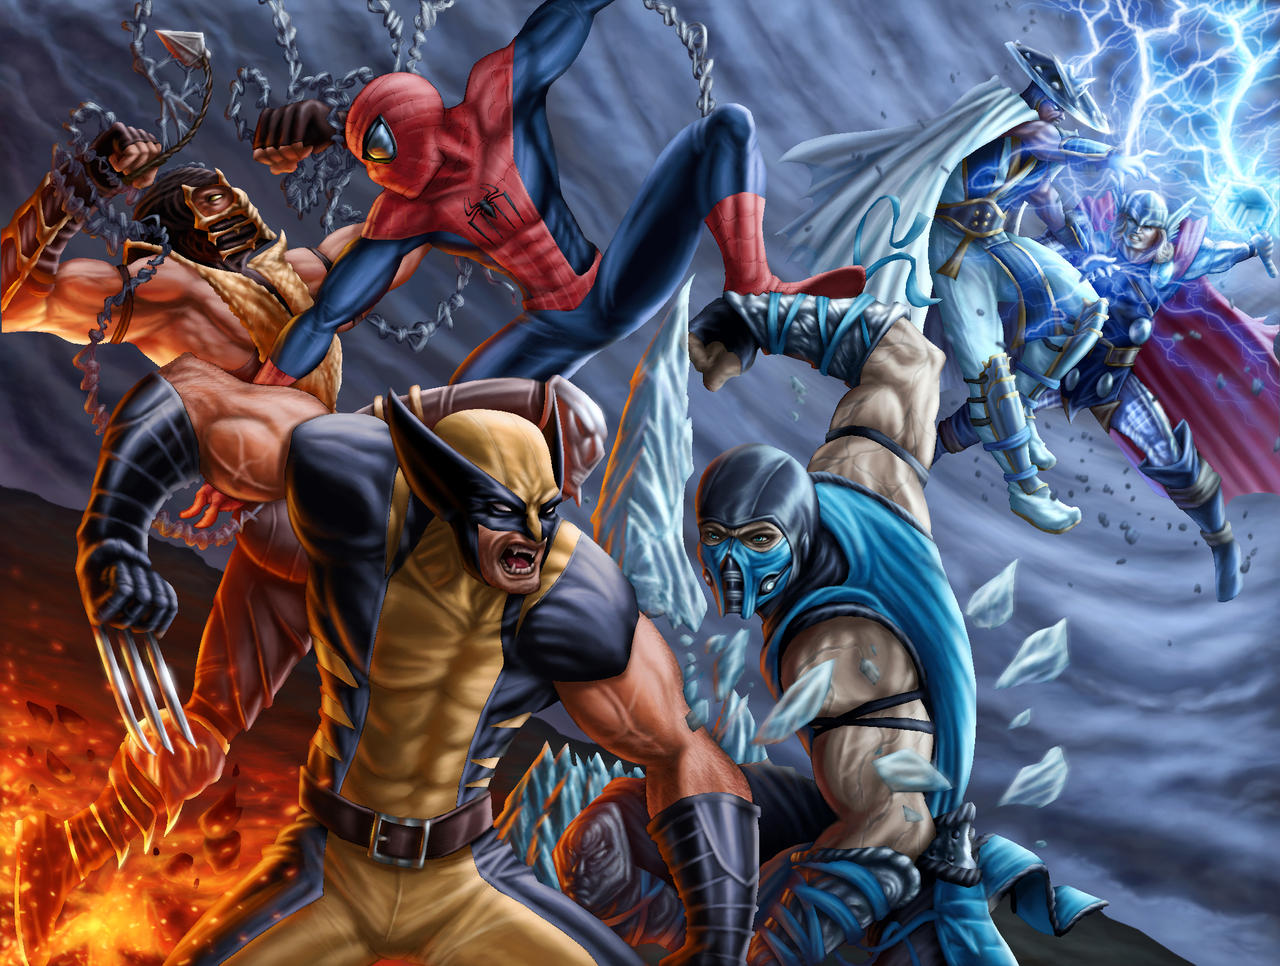 Dreno360 Mortal Kombat VS Avengers by vic55b